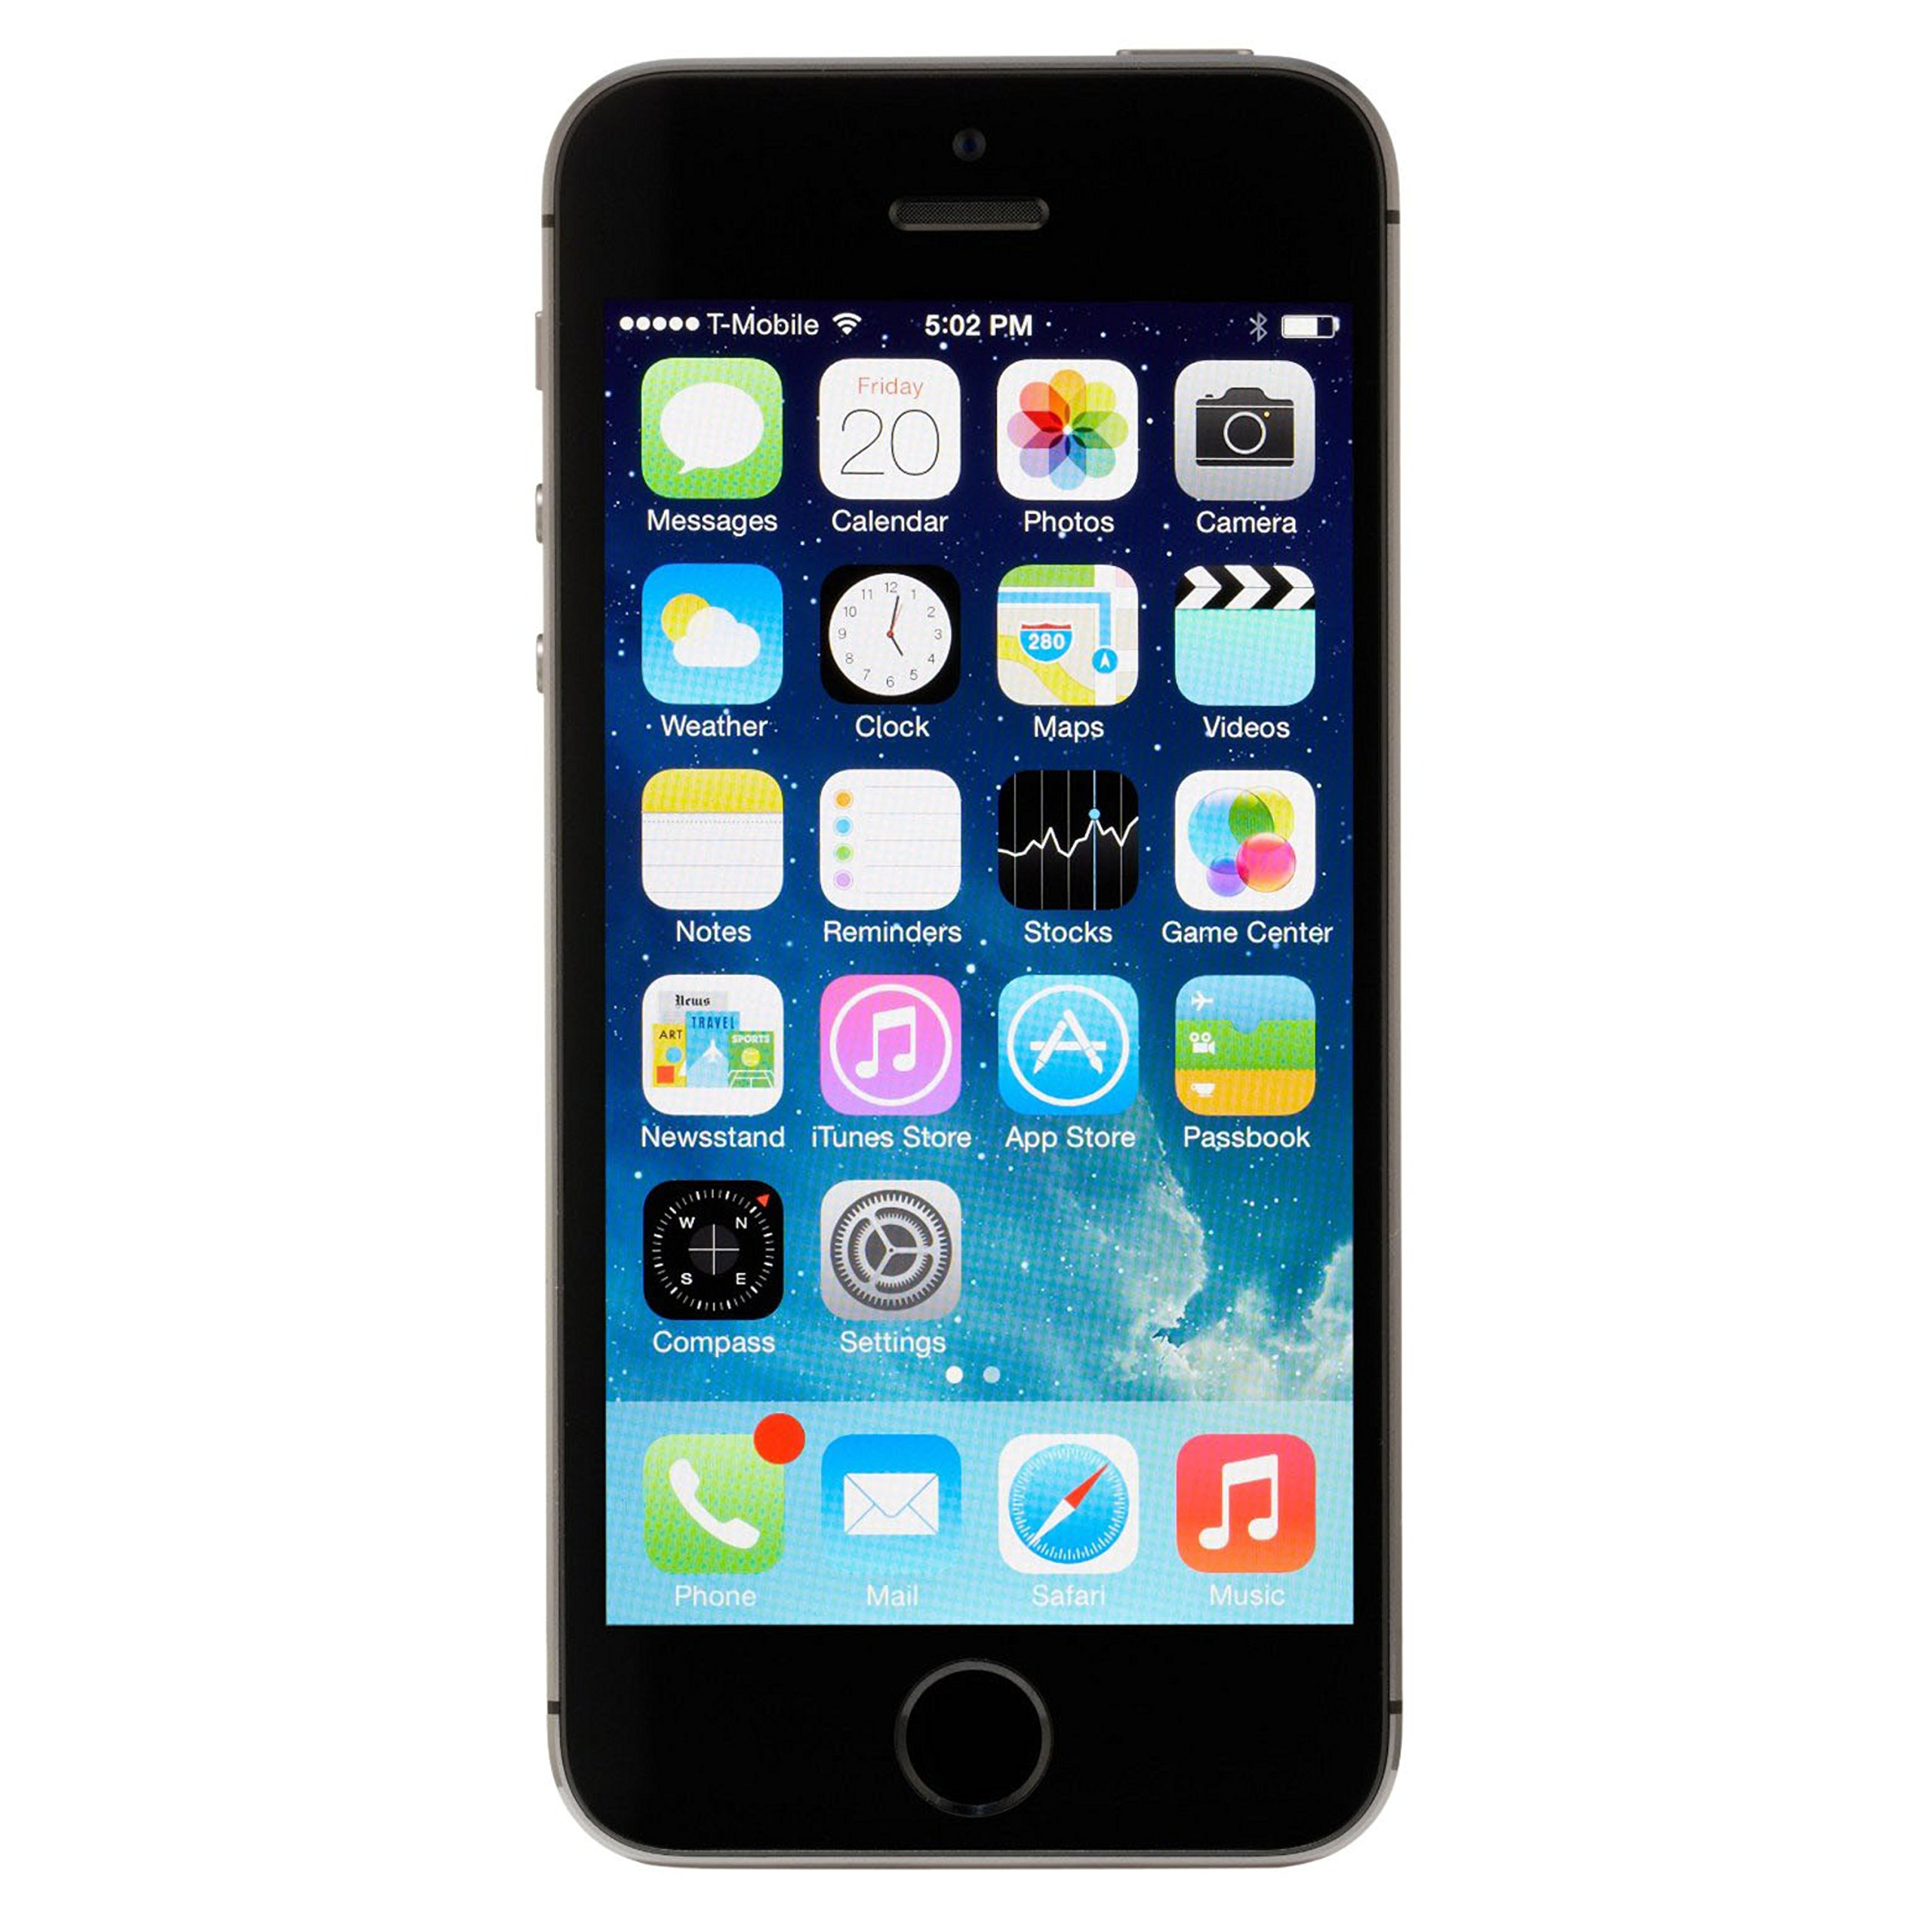 Apple iPhone 5S 16GB GSM Unlocked, Space Gray (Refurbished) by Apple (Image #1)